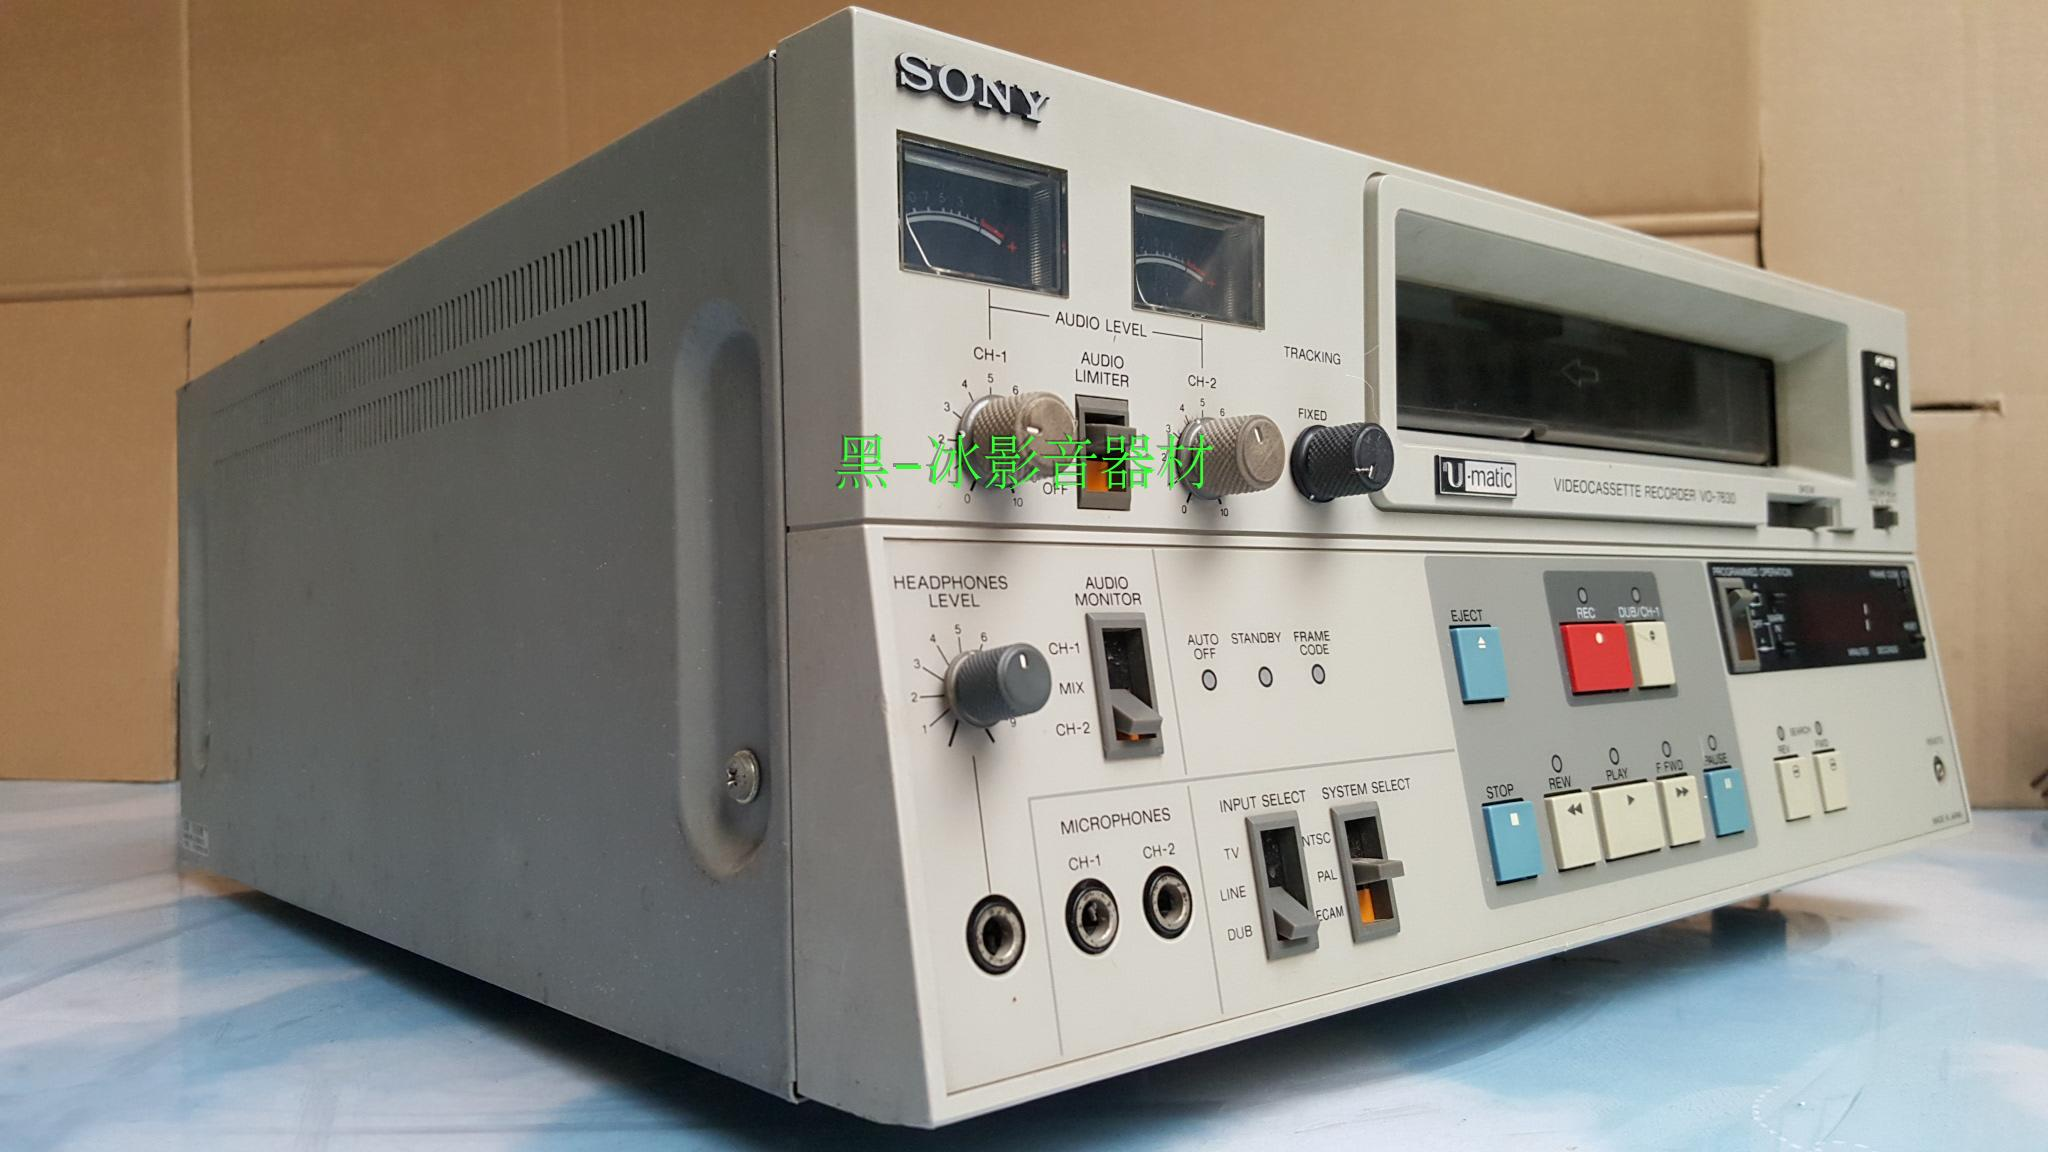 Sony Broadcast Video Recorder Editor U-matic Video Tape Educational Video Equipment VO-7630